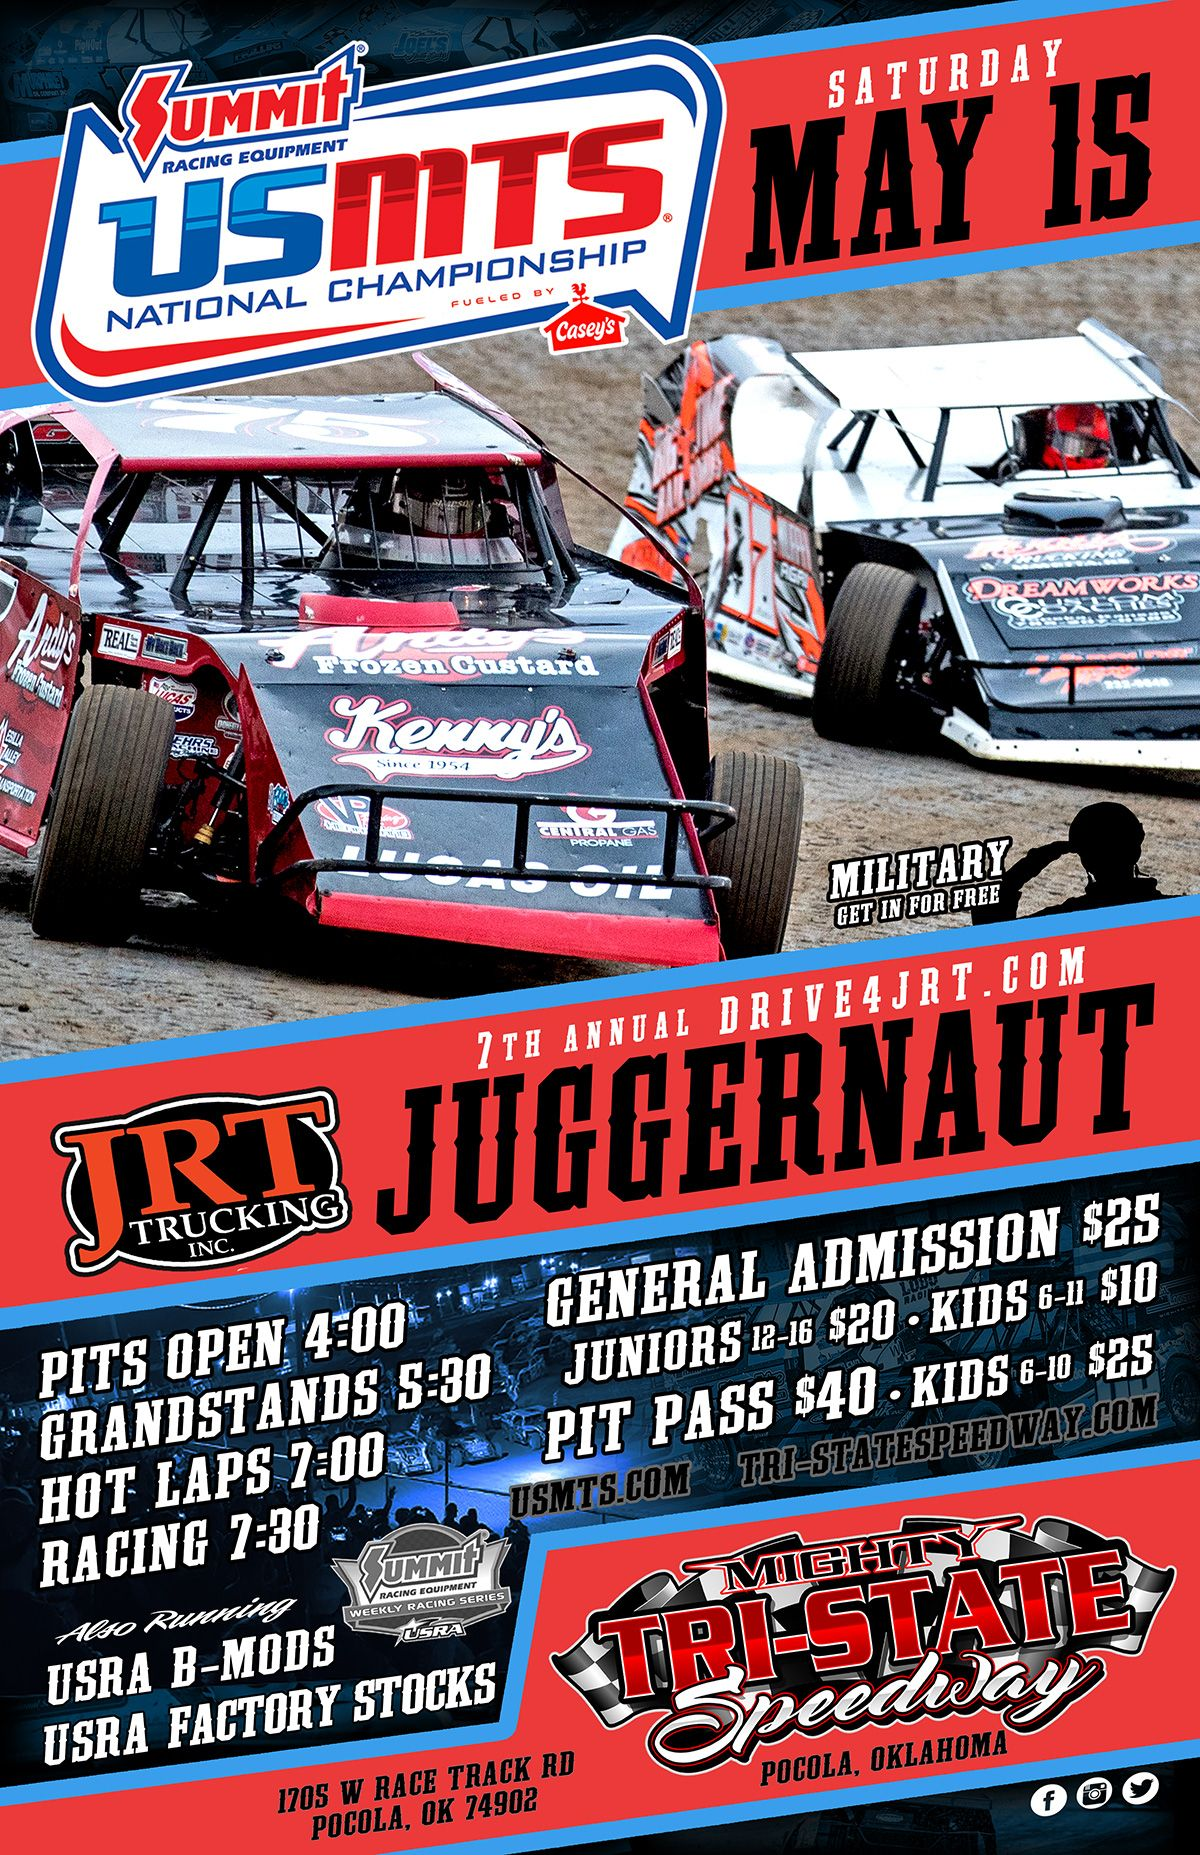 7th Annual USMTS JRT Trucking Inc. Juggernaut presented by Hacienda Mechanical